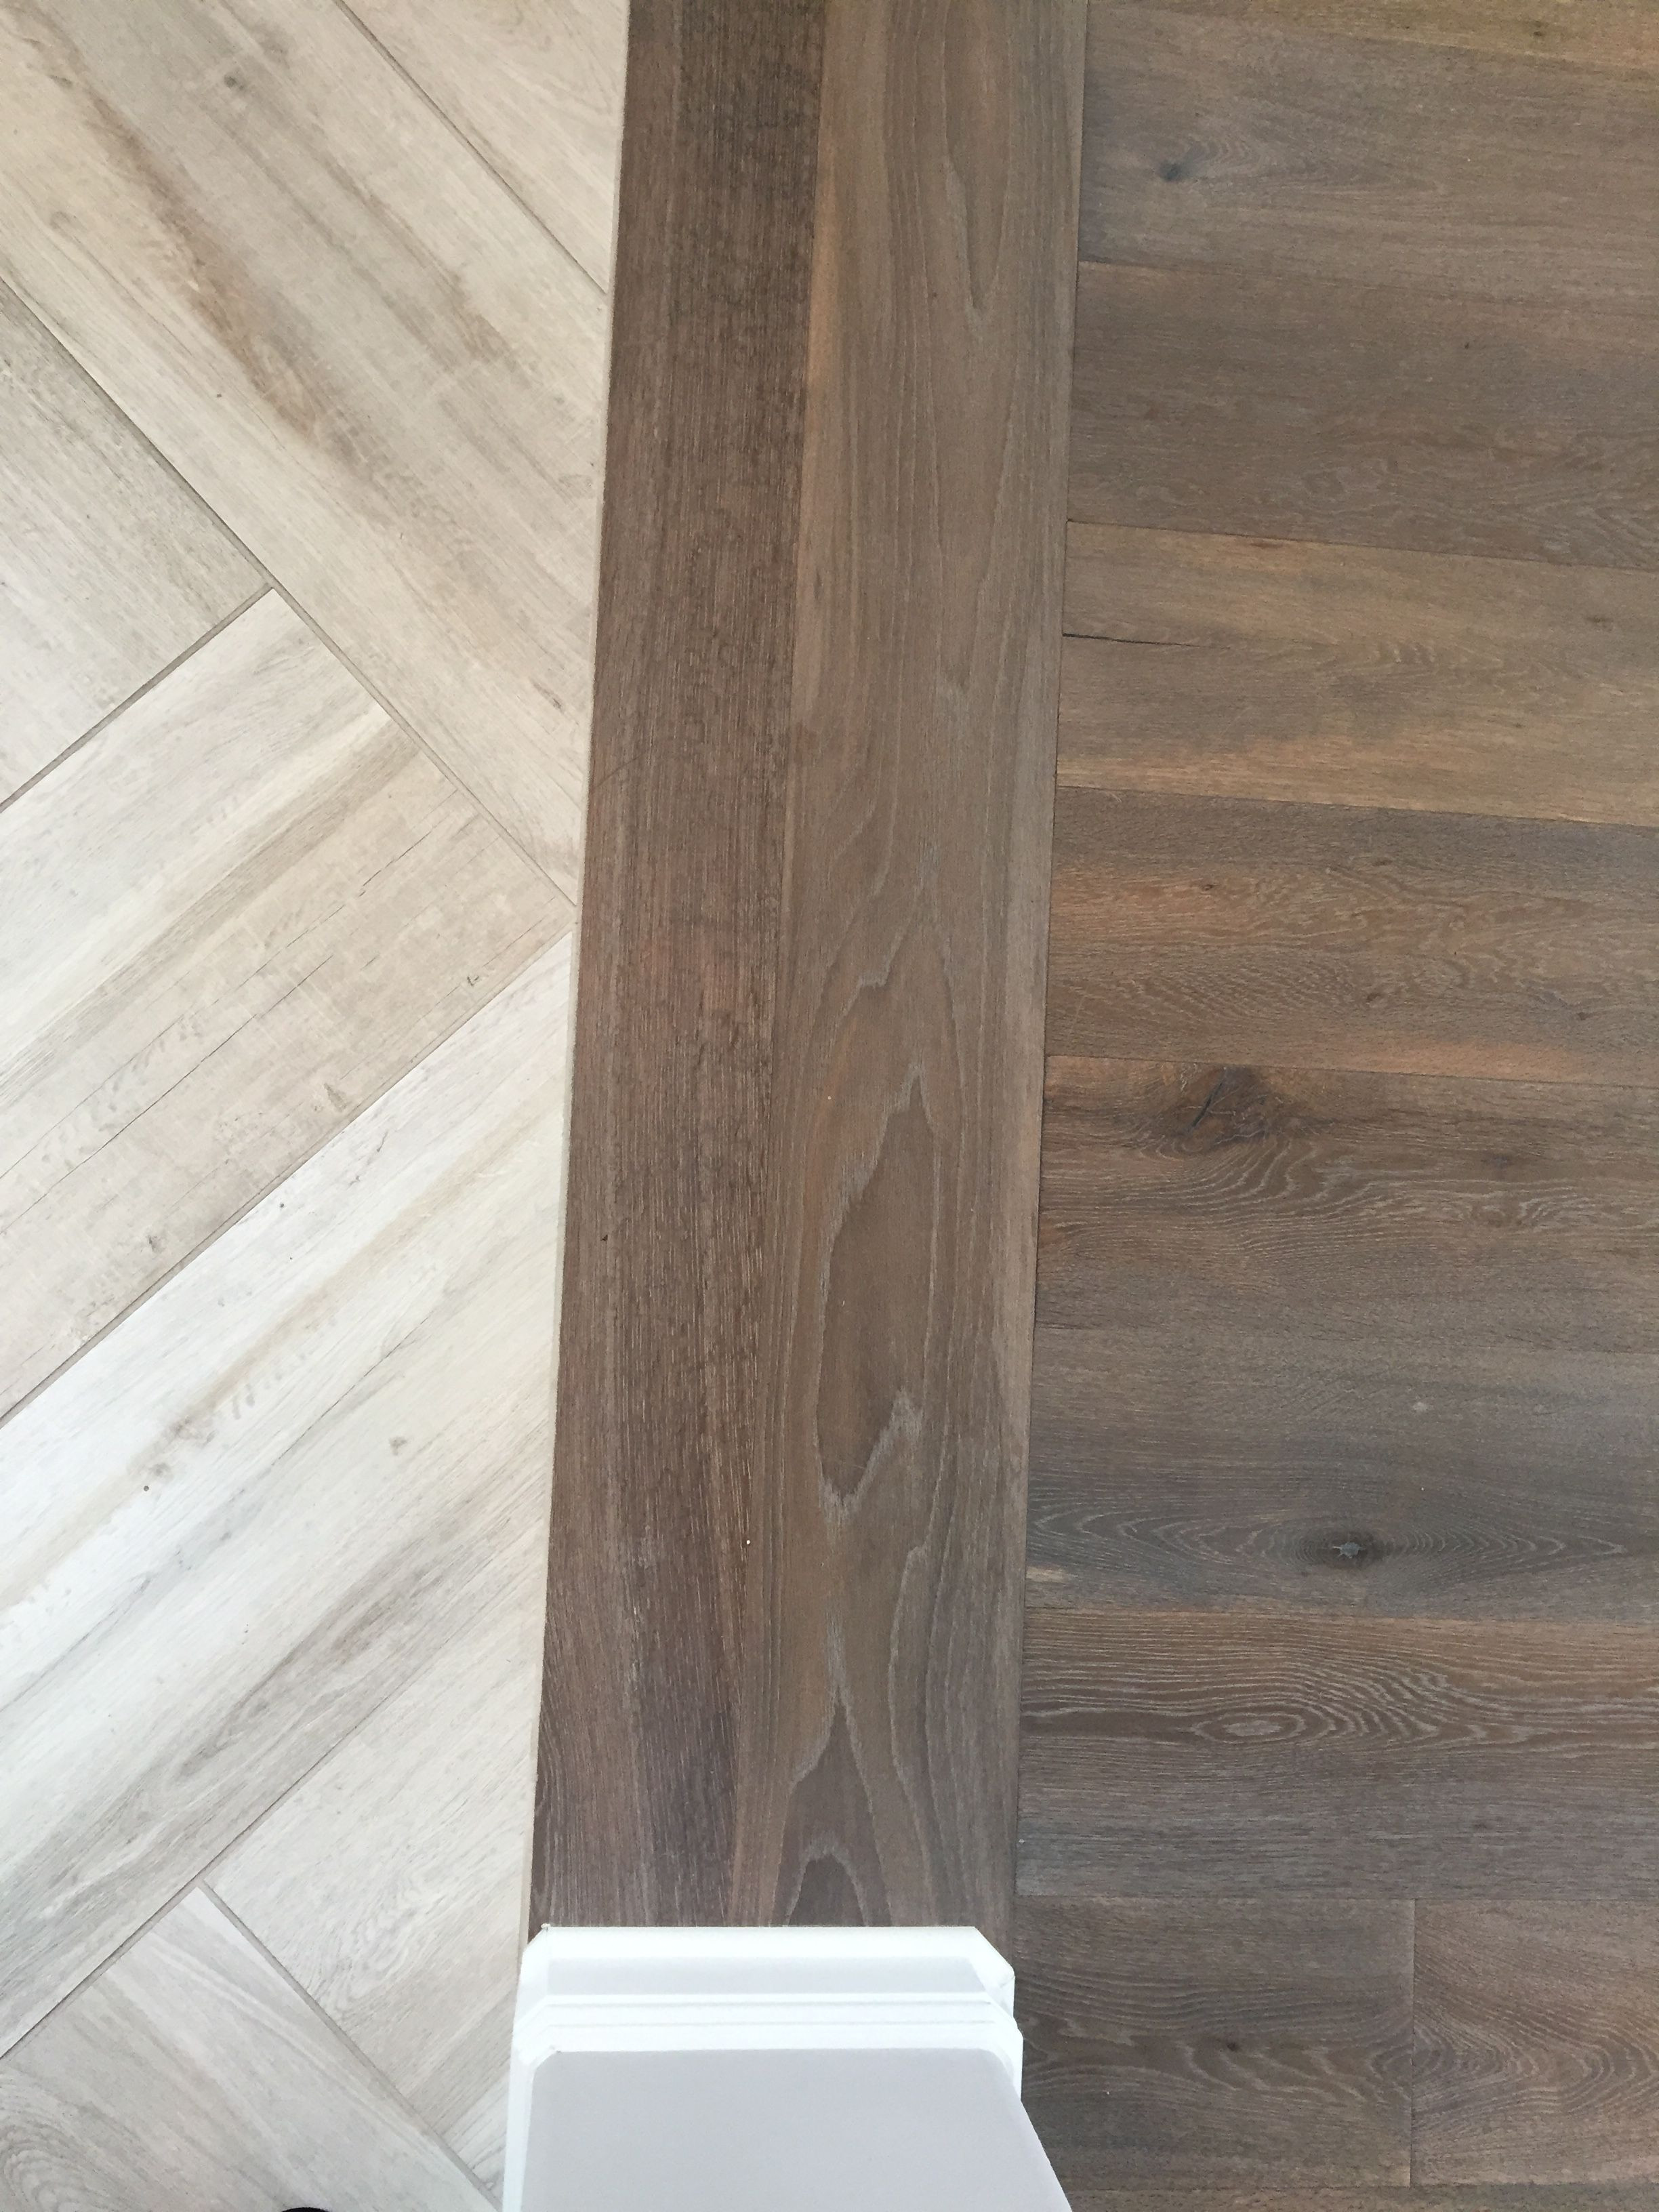 best quality engineered hardwood flooring of floor transition laminate to herringbone tile pattern model in floor transition laminate to herringbone tile pattern herringbone tile pattern herringbone wood floor